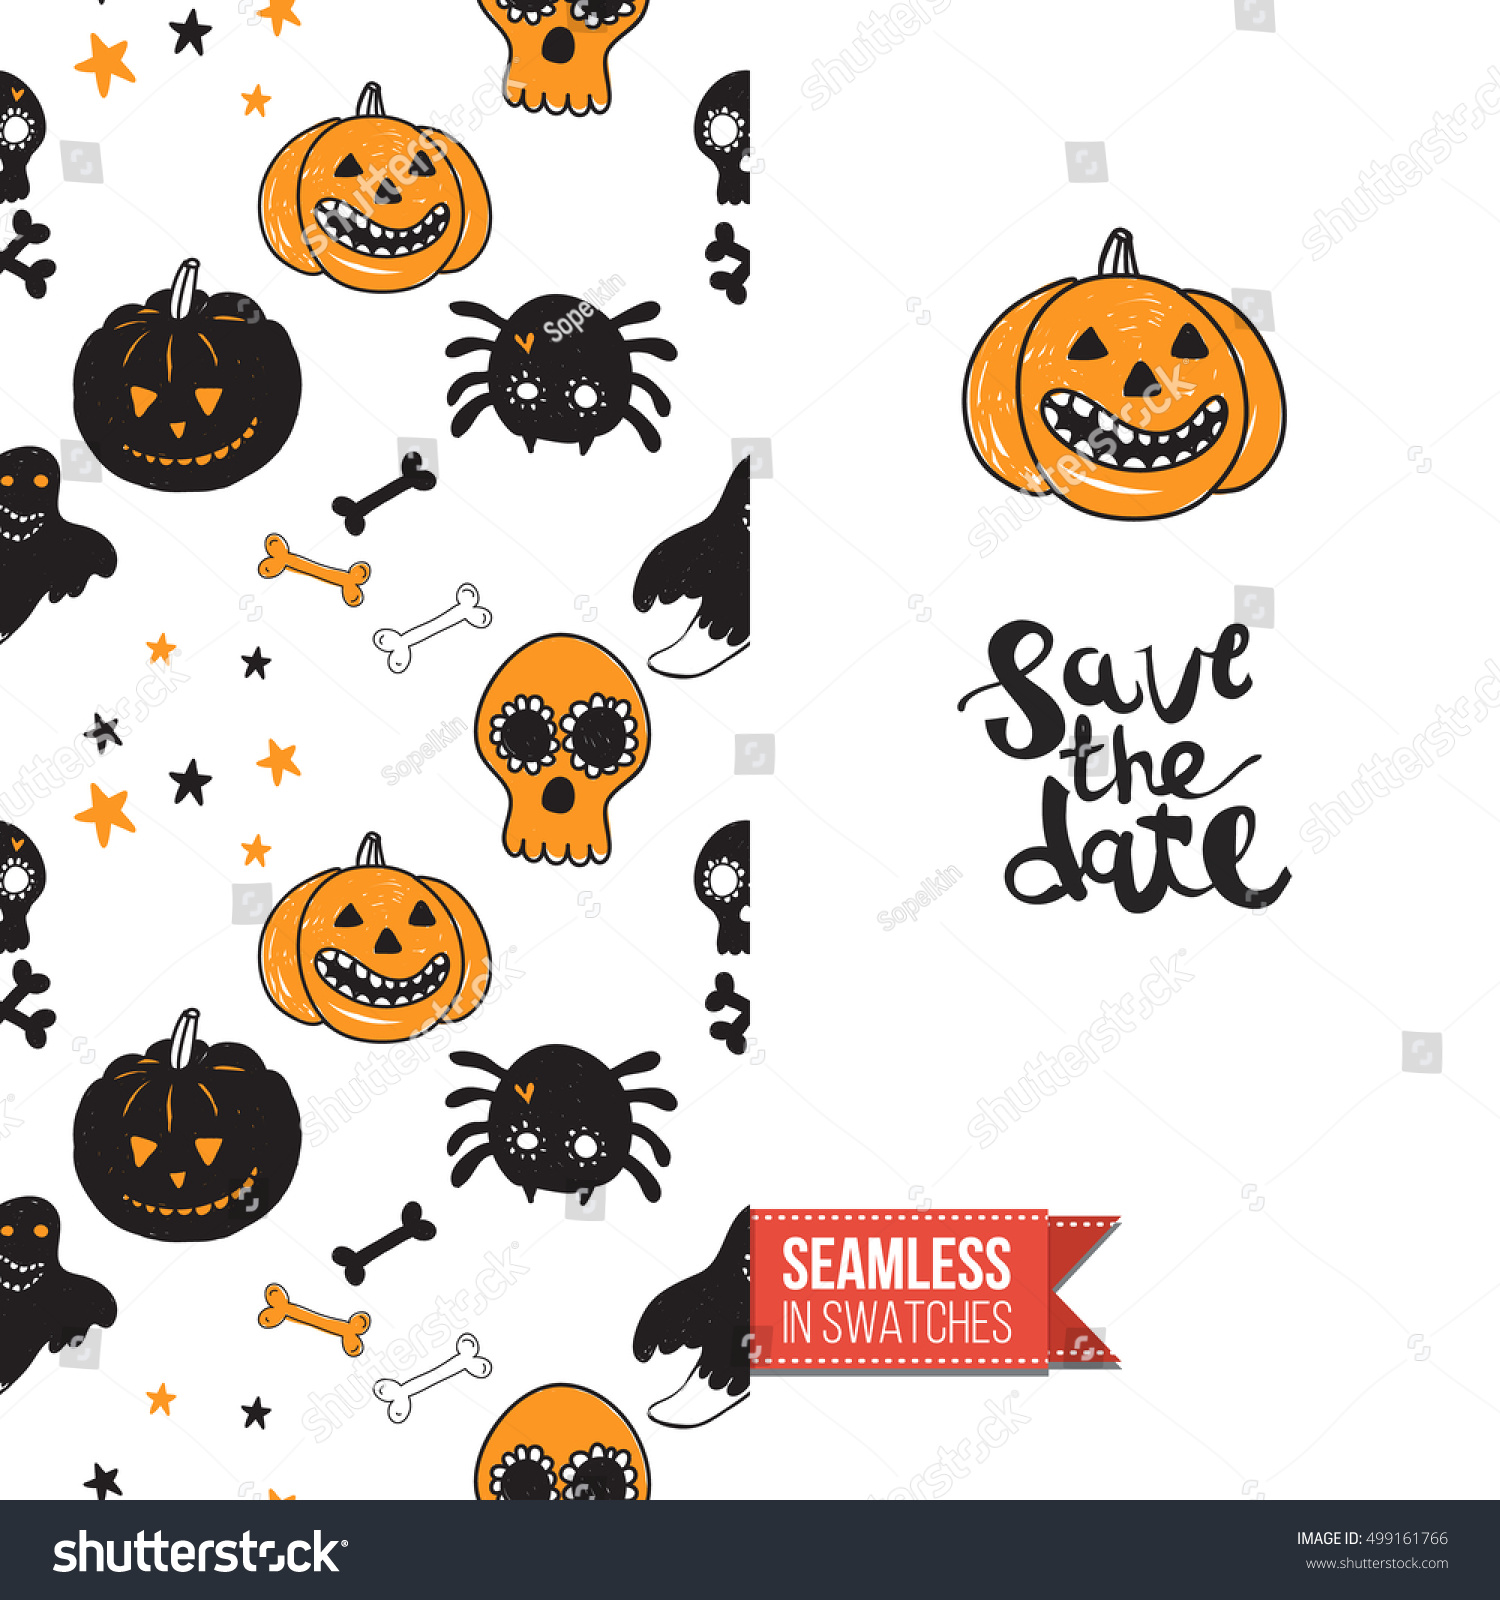 Uncategorized Halloween Symbolism minimalistic style greeting card halloween inspired stock vector for by spooky symbolism seamless pattern with stylized